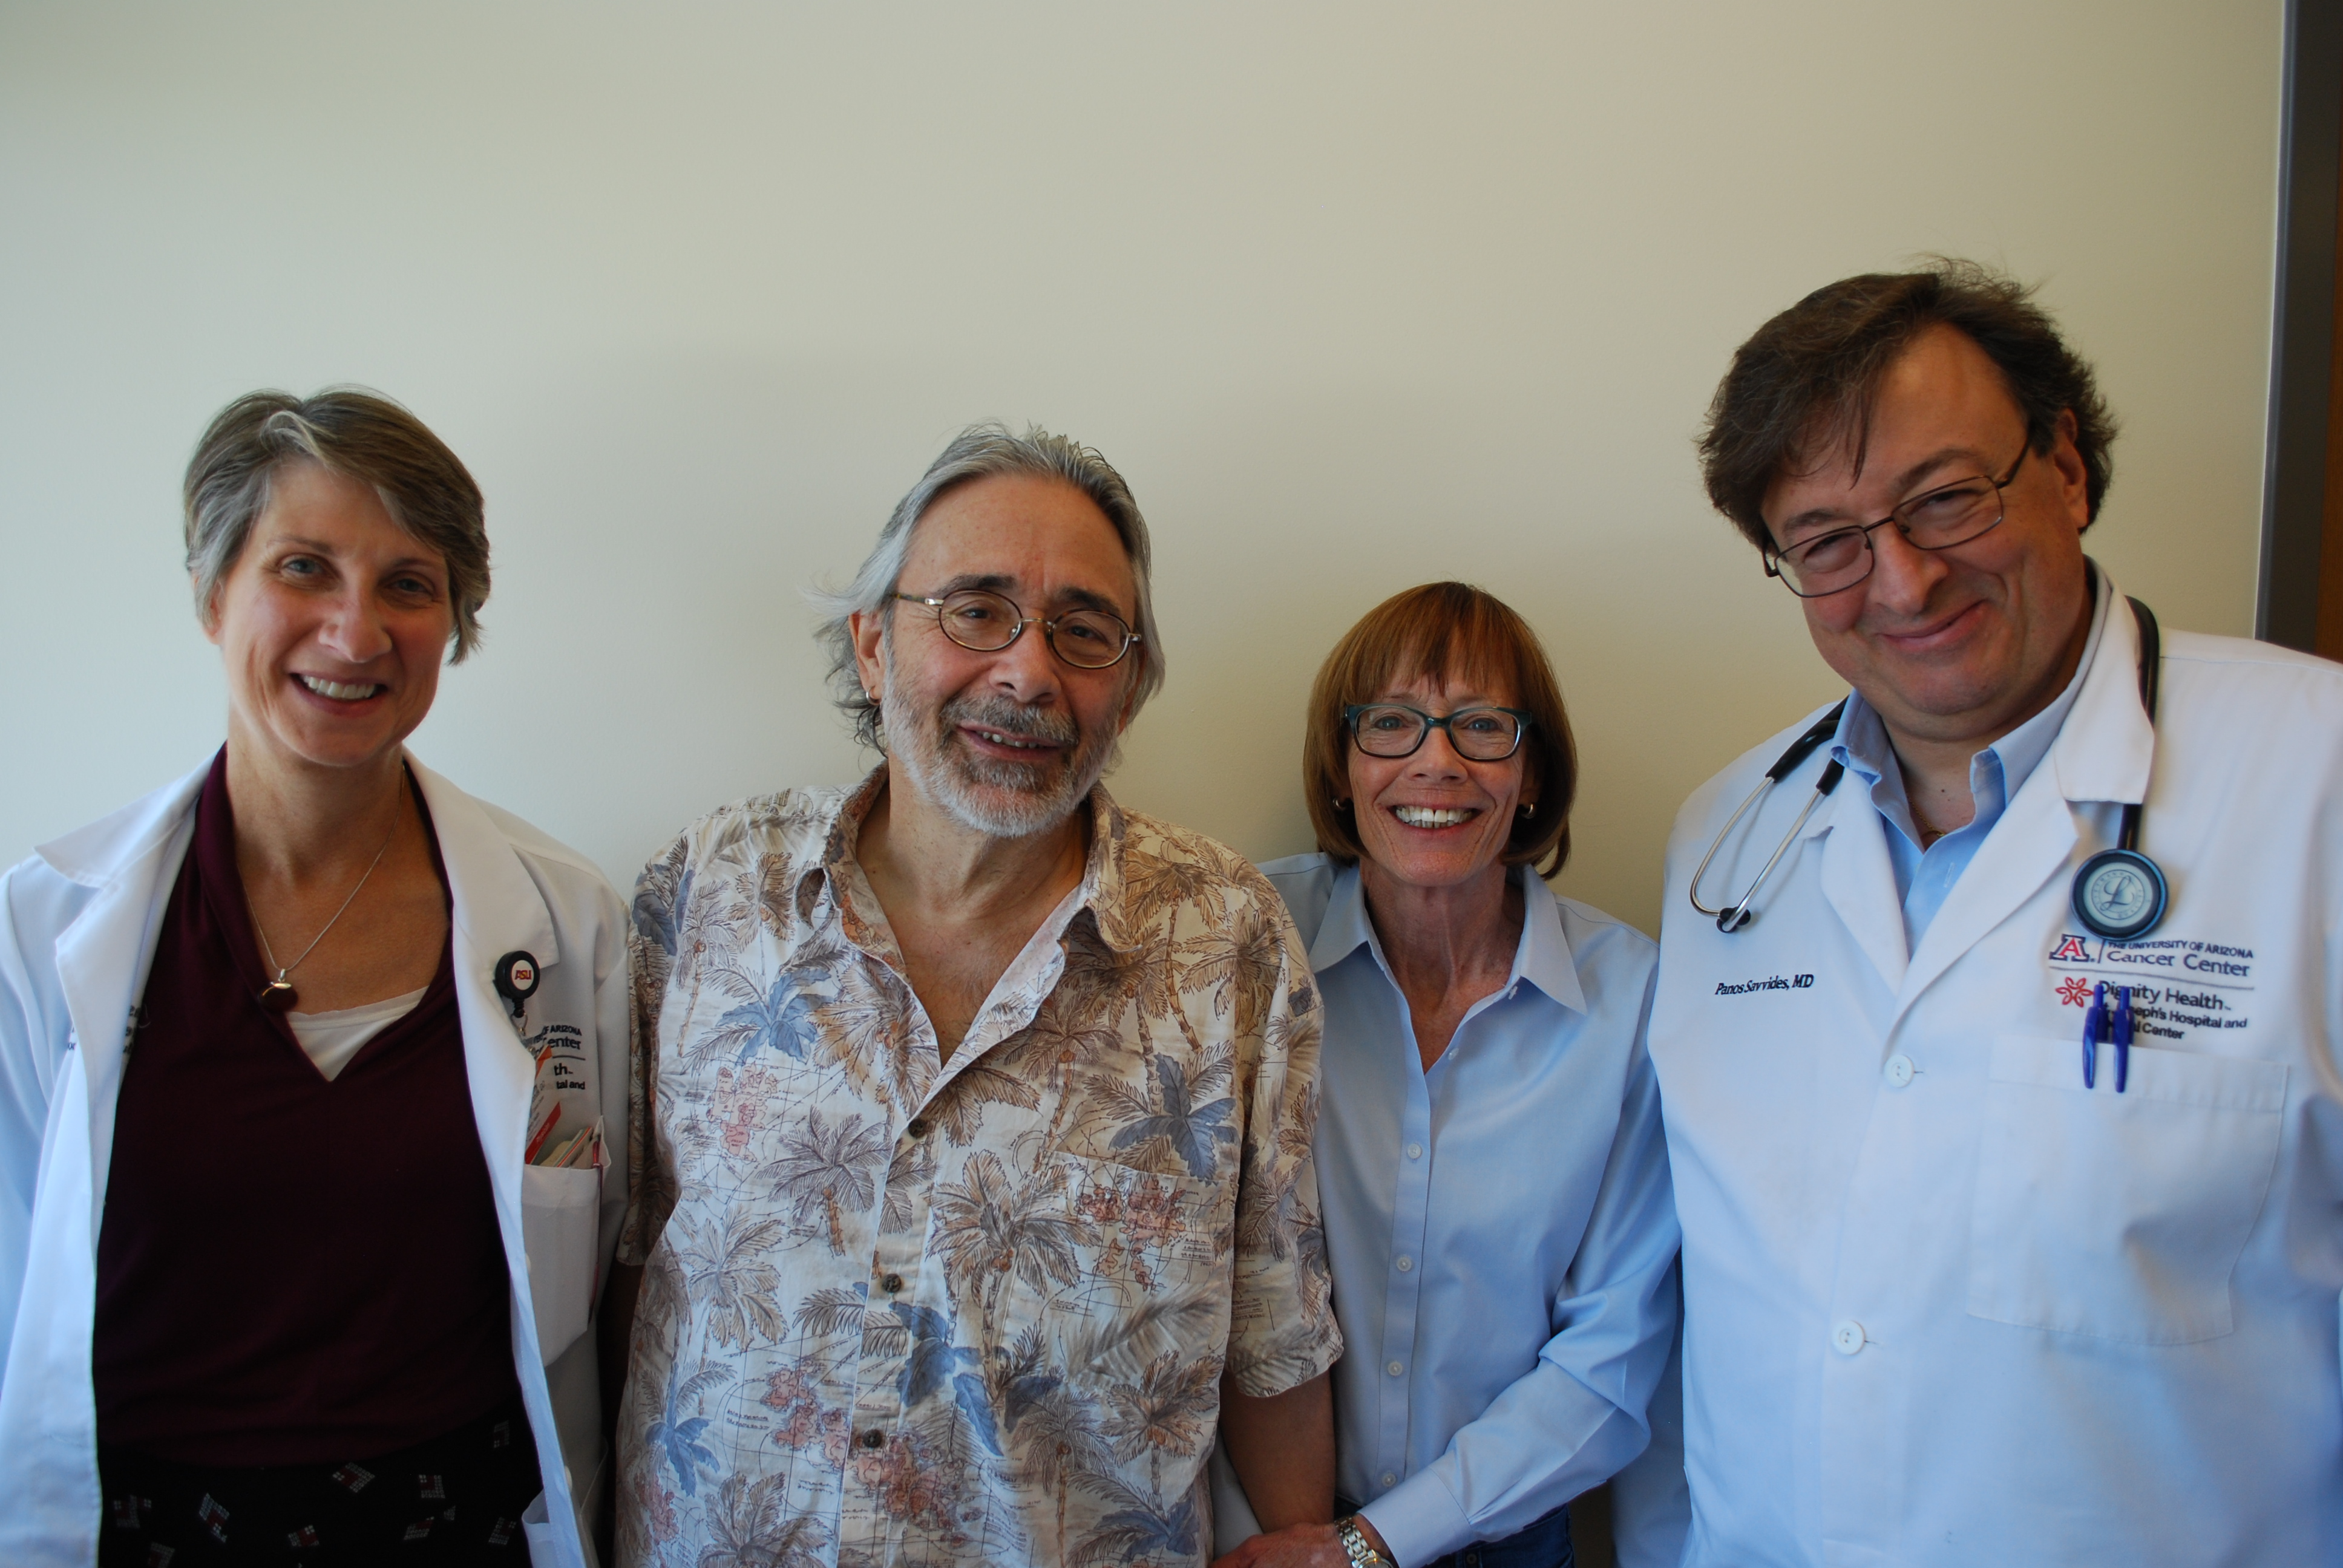 Mike and Beth Rungo with Drs Tobias and Savvides